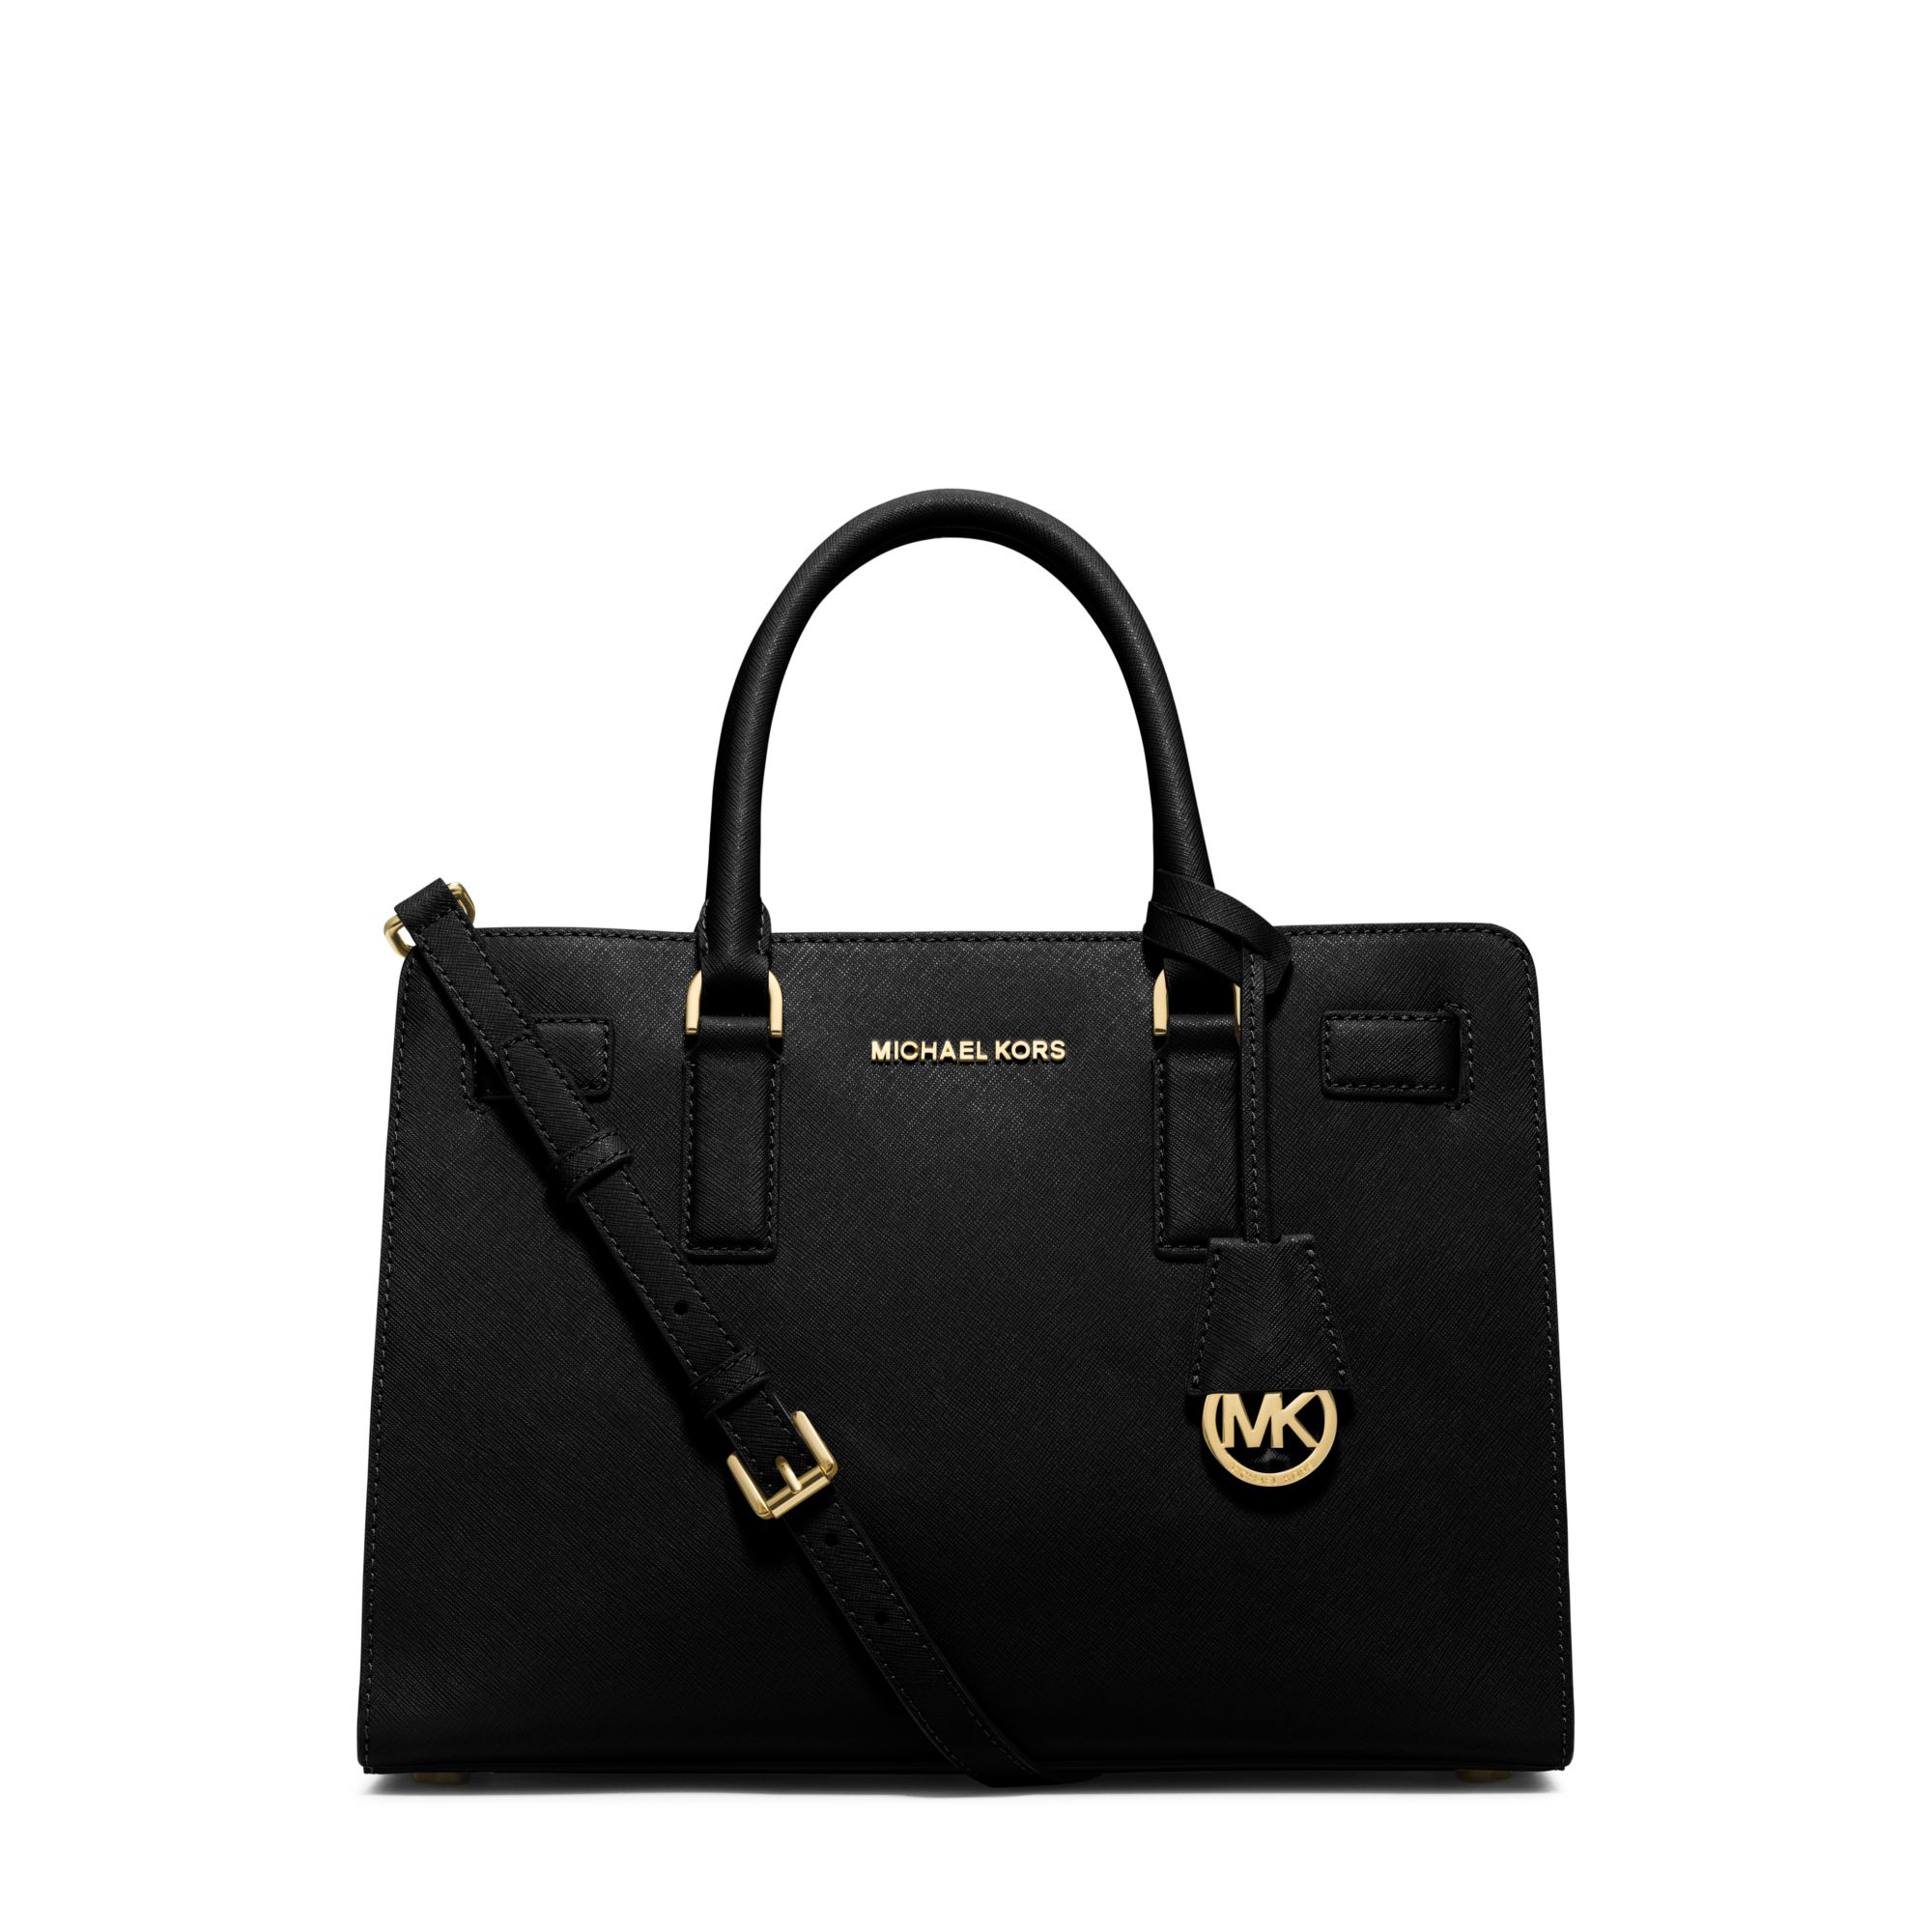 michael kors dillon saffiano leather satchel in black lyst. Black Bedroom Furniture Sets. Home Design Ideas